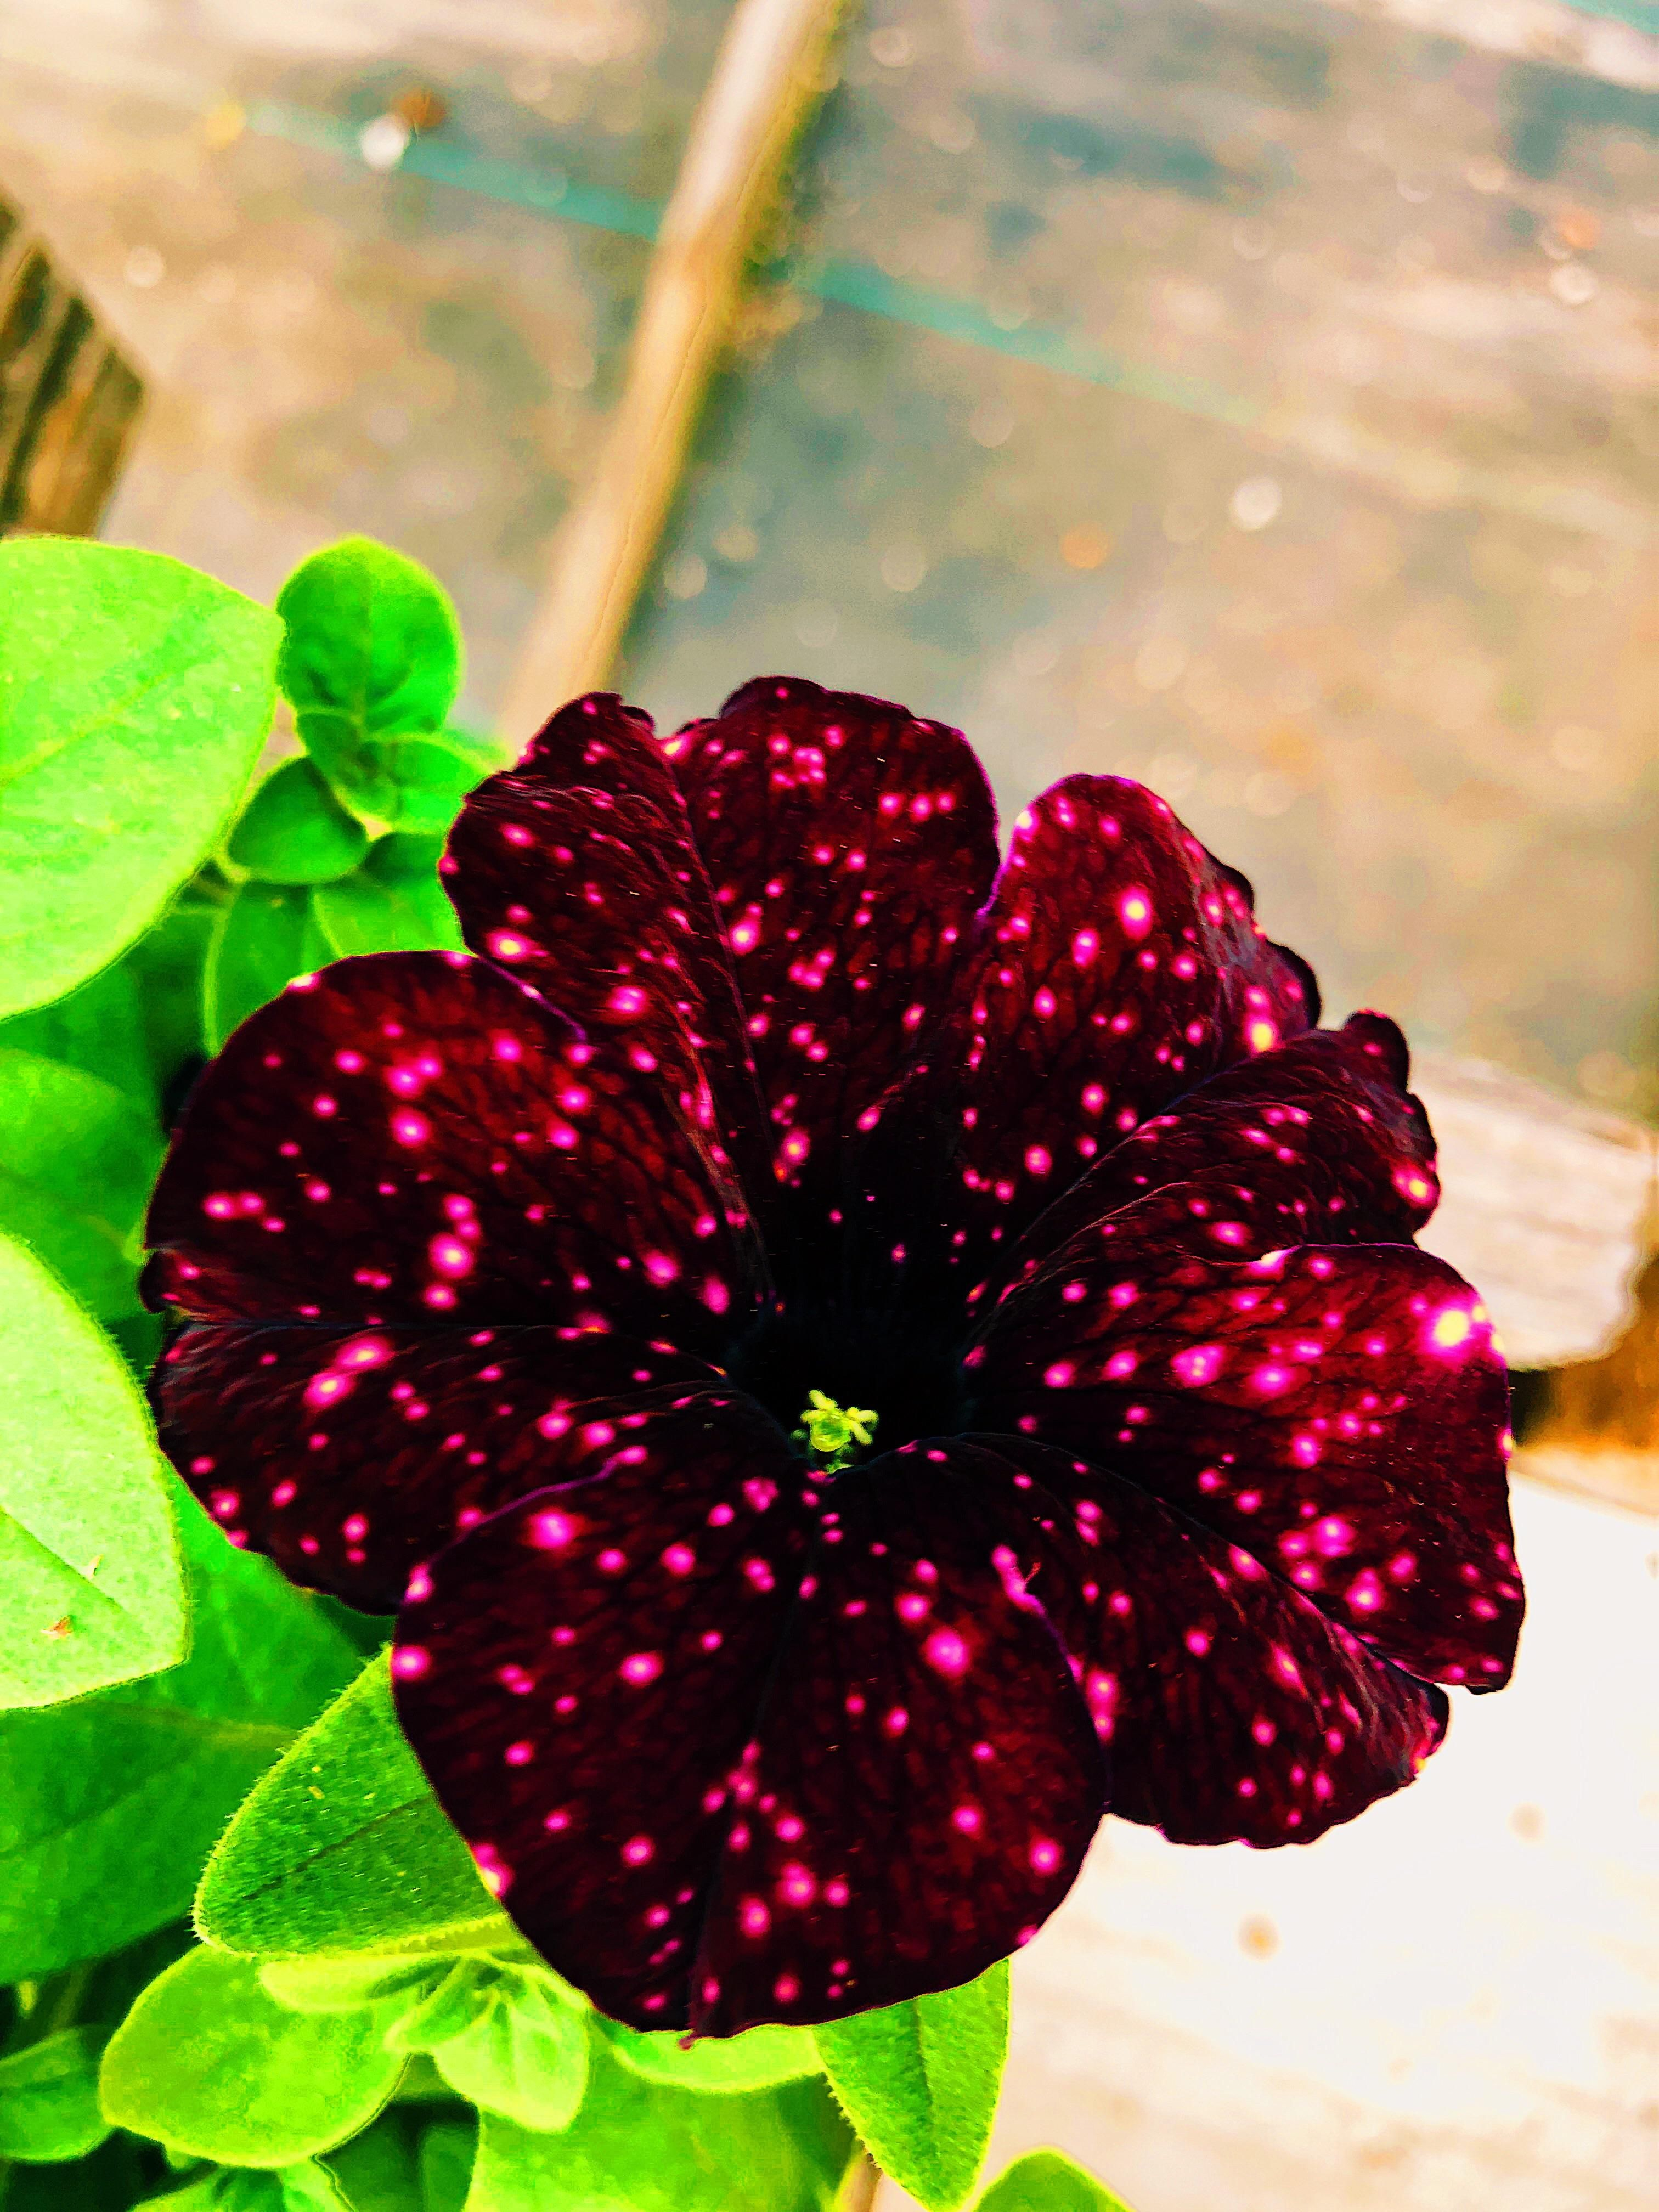 I Discovered The Eccentric Starry Sky Burgundy Petunia Today And I